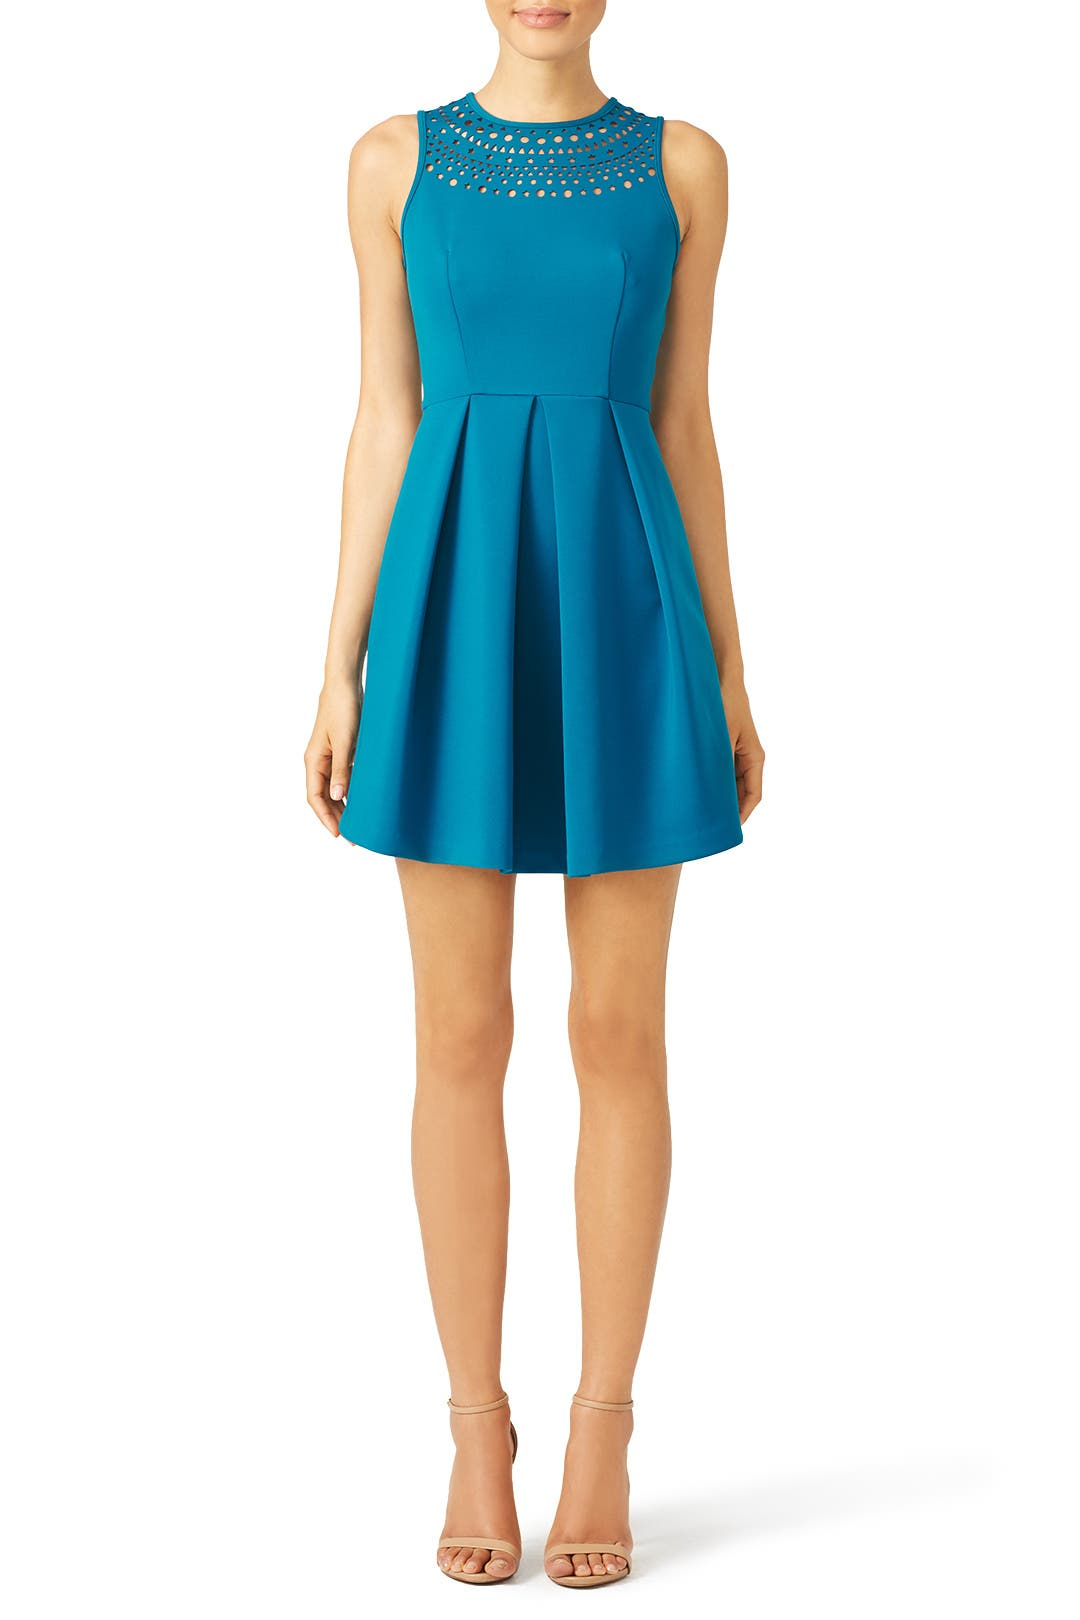 Aries Dress By Amanda Uprichard For 40 Rent The Runway